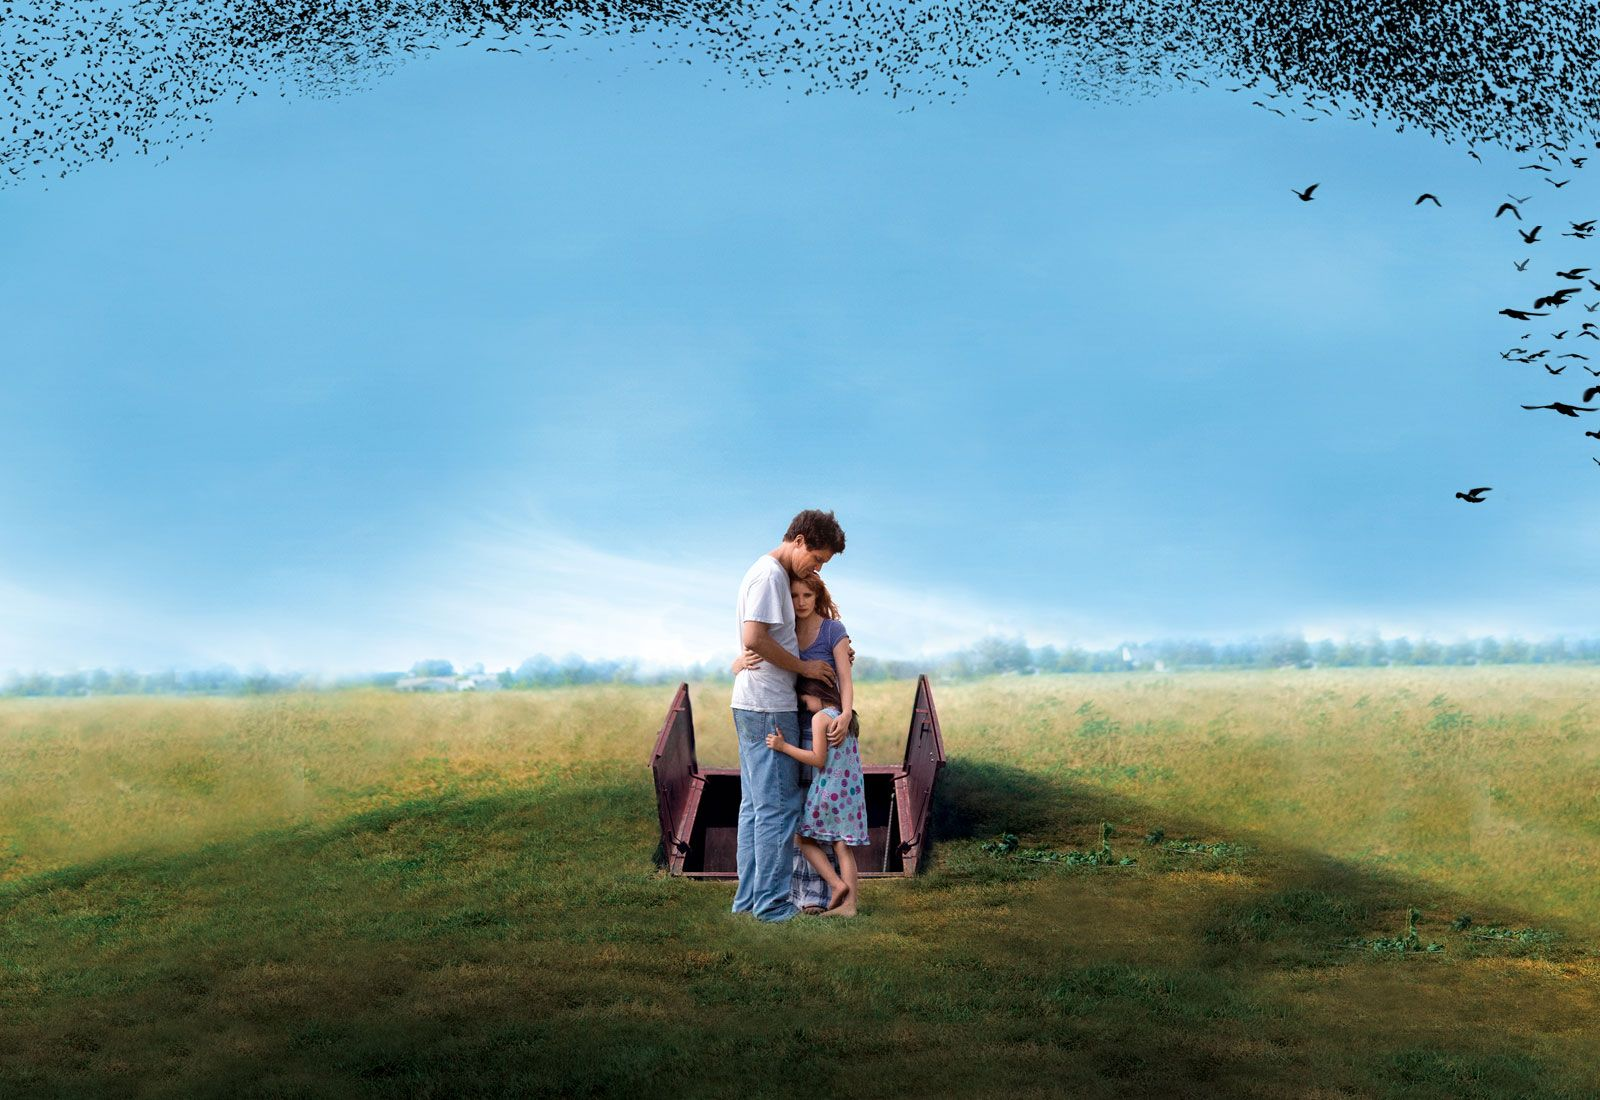 There Is A Storm Coming Take shelter, Love movie, Great